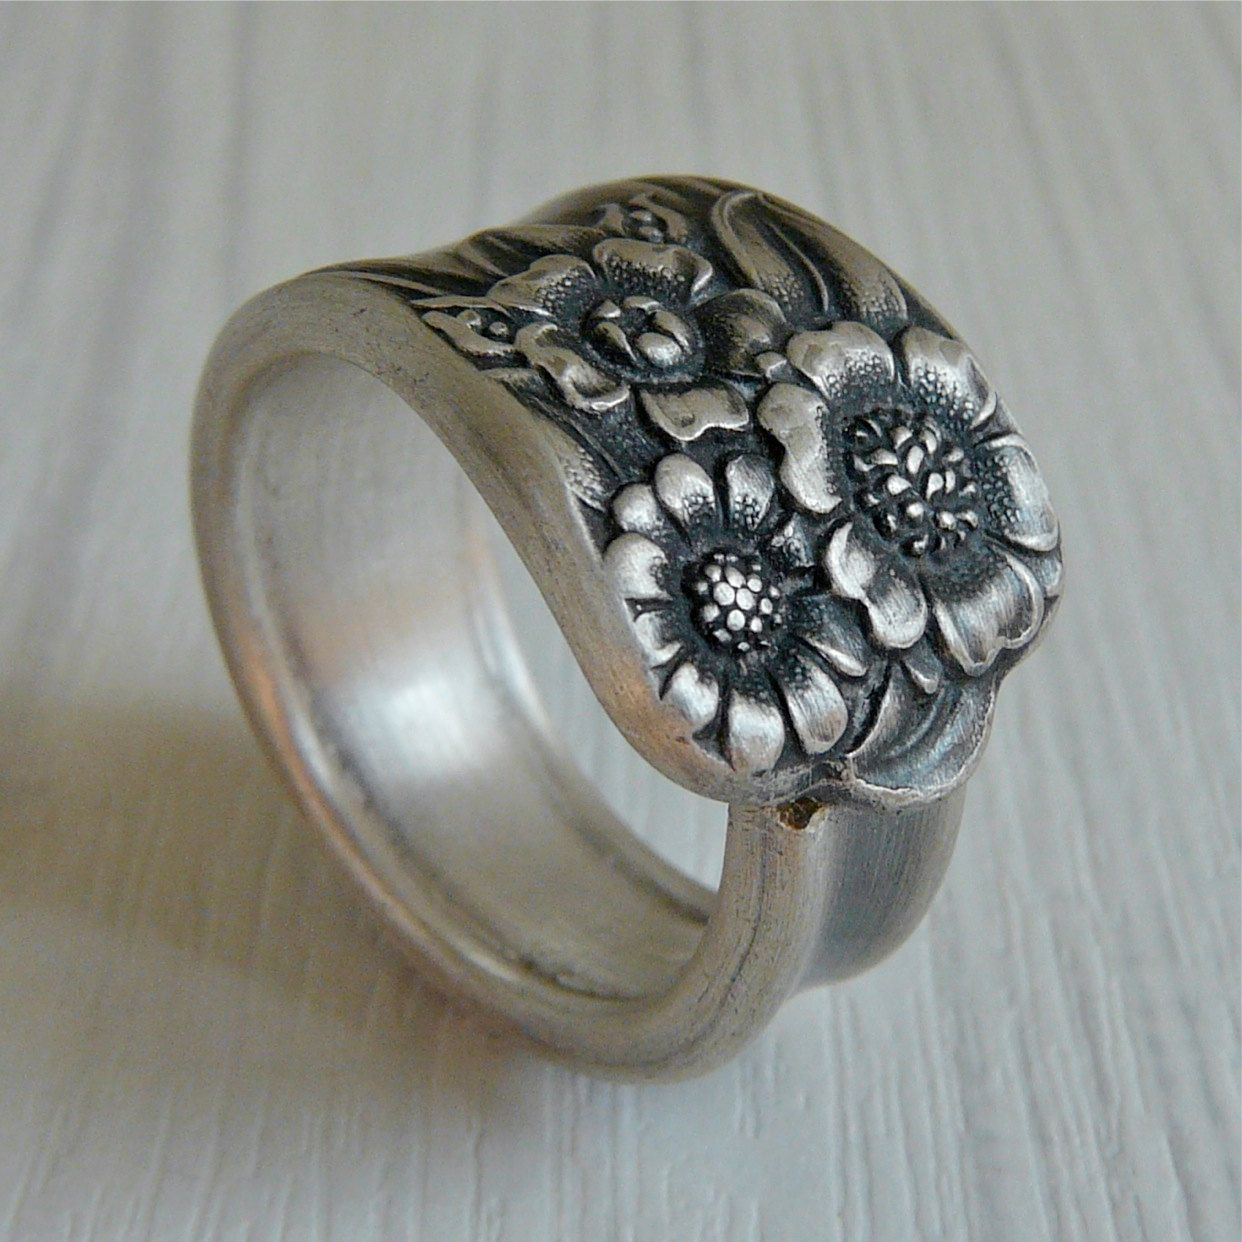 Silver Spoon Ring April 1950 Womens wedding bands